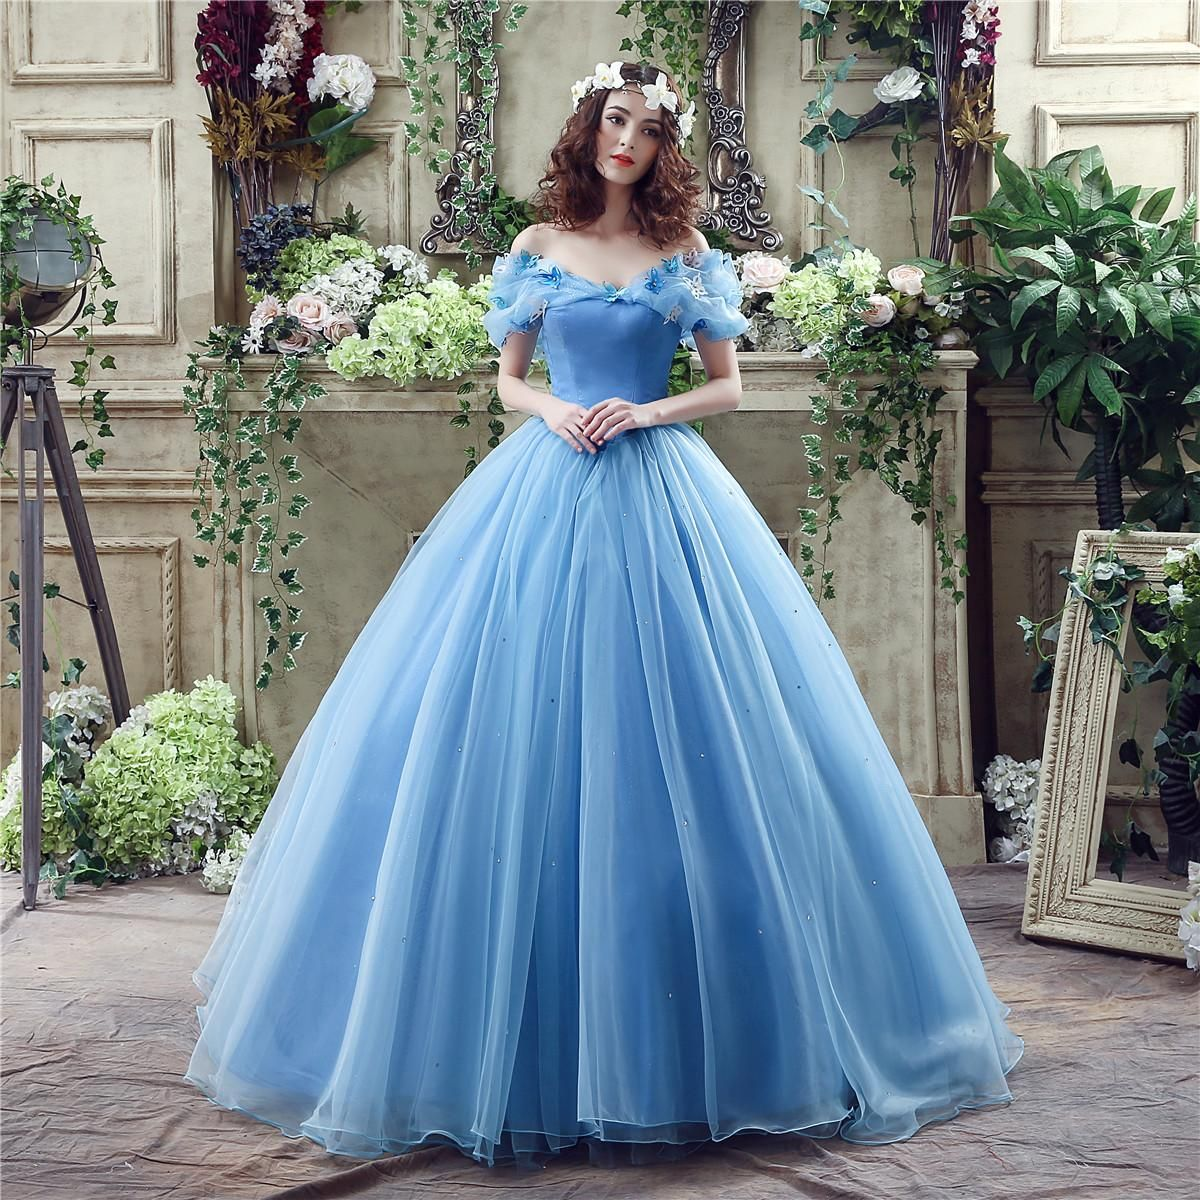 2016 fairytale masquerade ball gowns in stock blue butterfly 2016 fairytale masquerade ball gowns in stock blue butterfly portrait beaded tulle lace up prom party dresses ombrellifo Choice Image